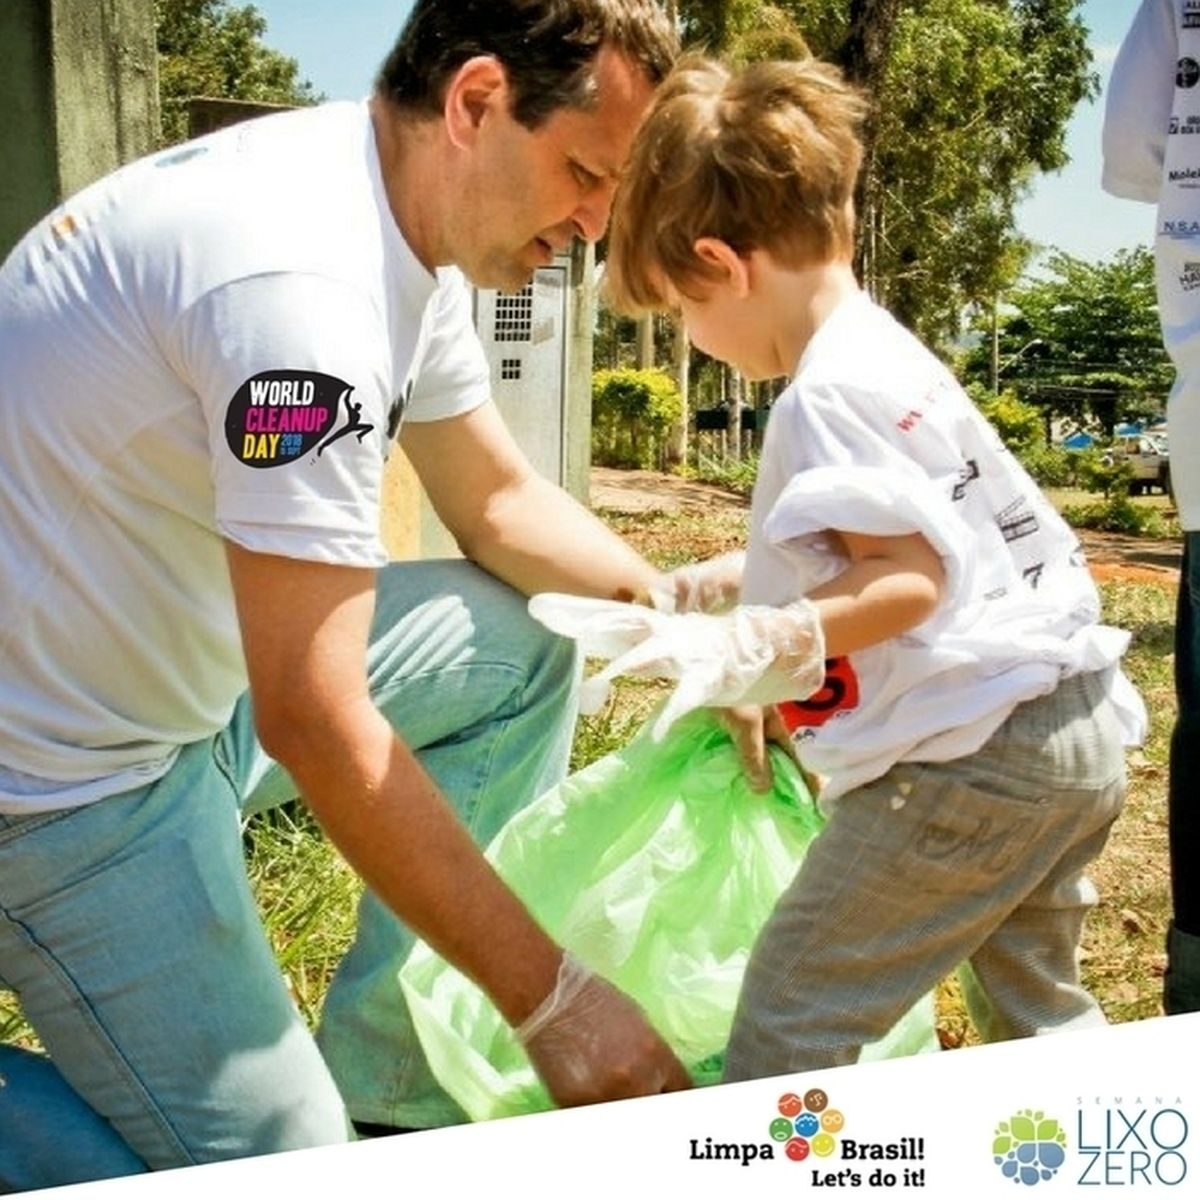 Clean Up Day World, na Semana Lixo Zero! Sorocaba